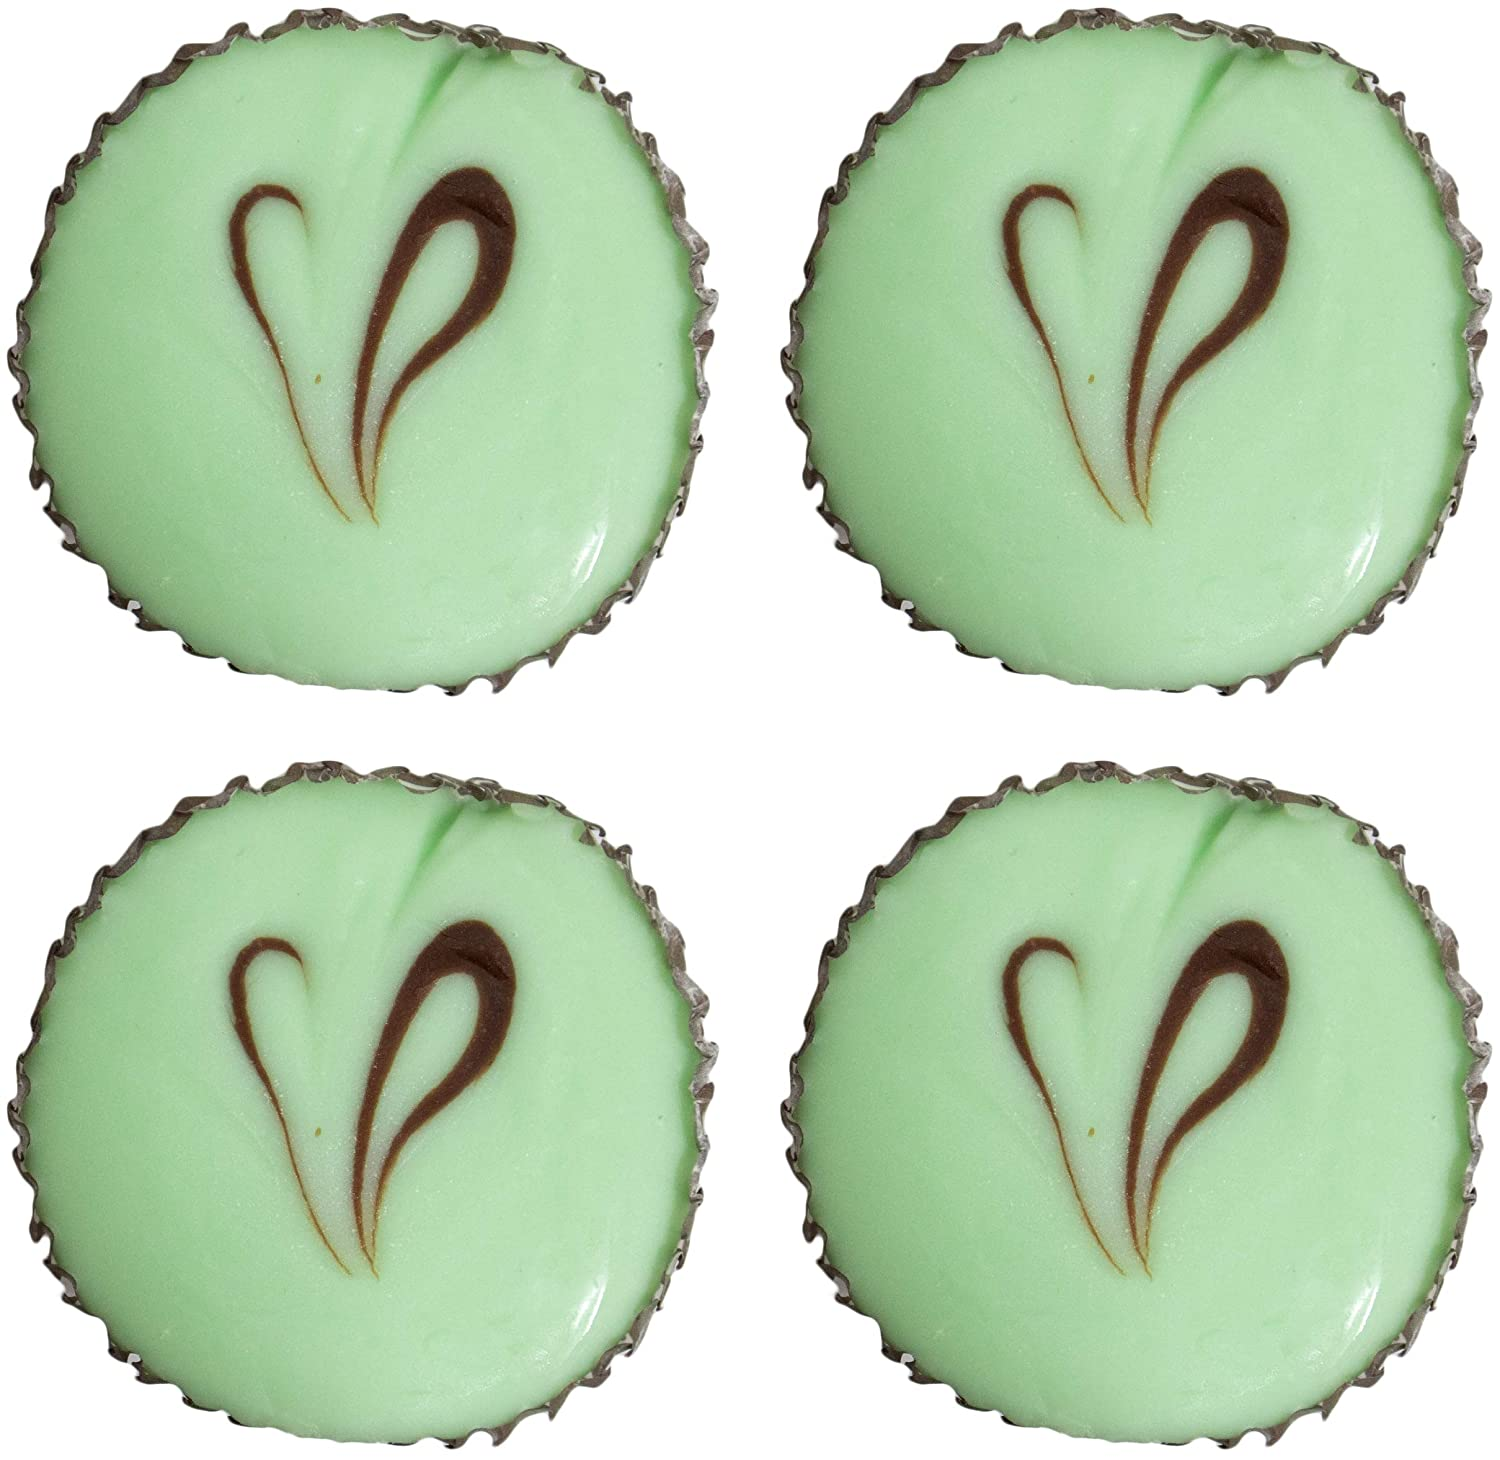 Made in USA 1 lb Artisan Creamy Mint Chocolate Fudge Cups (Pack of 4)